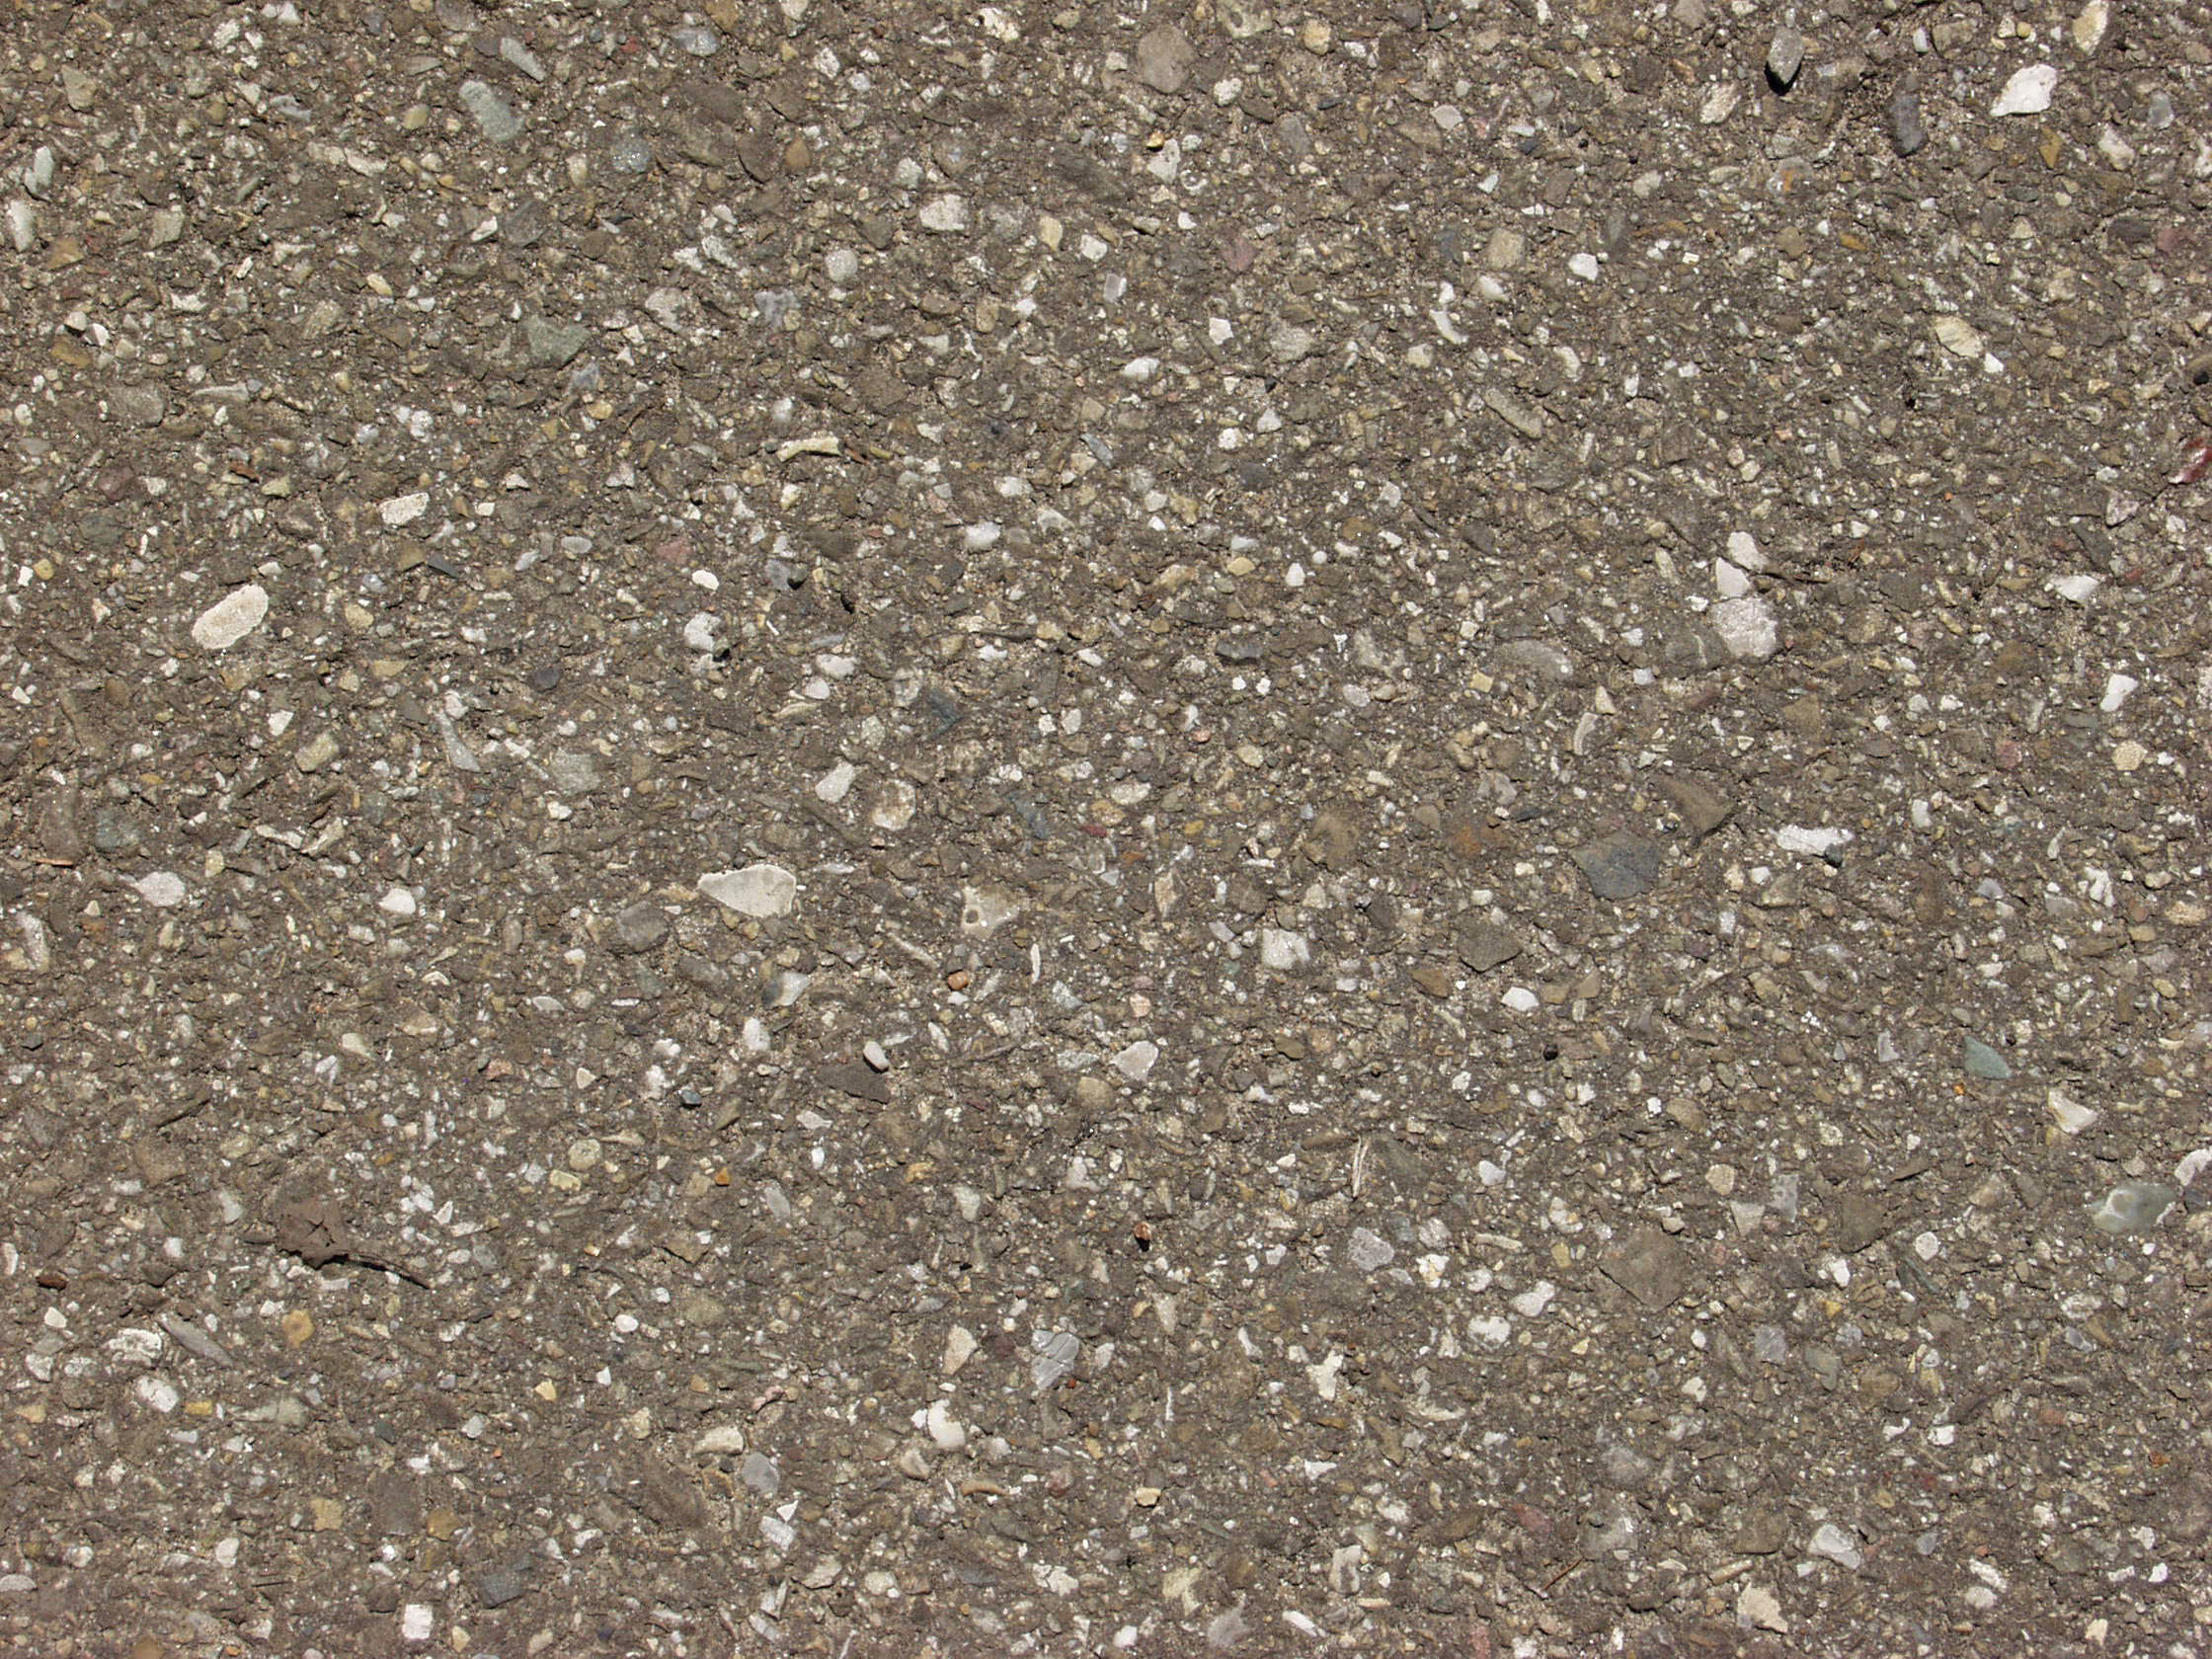 Asphalt texture background, free picture download